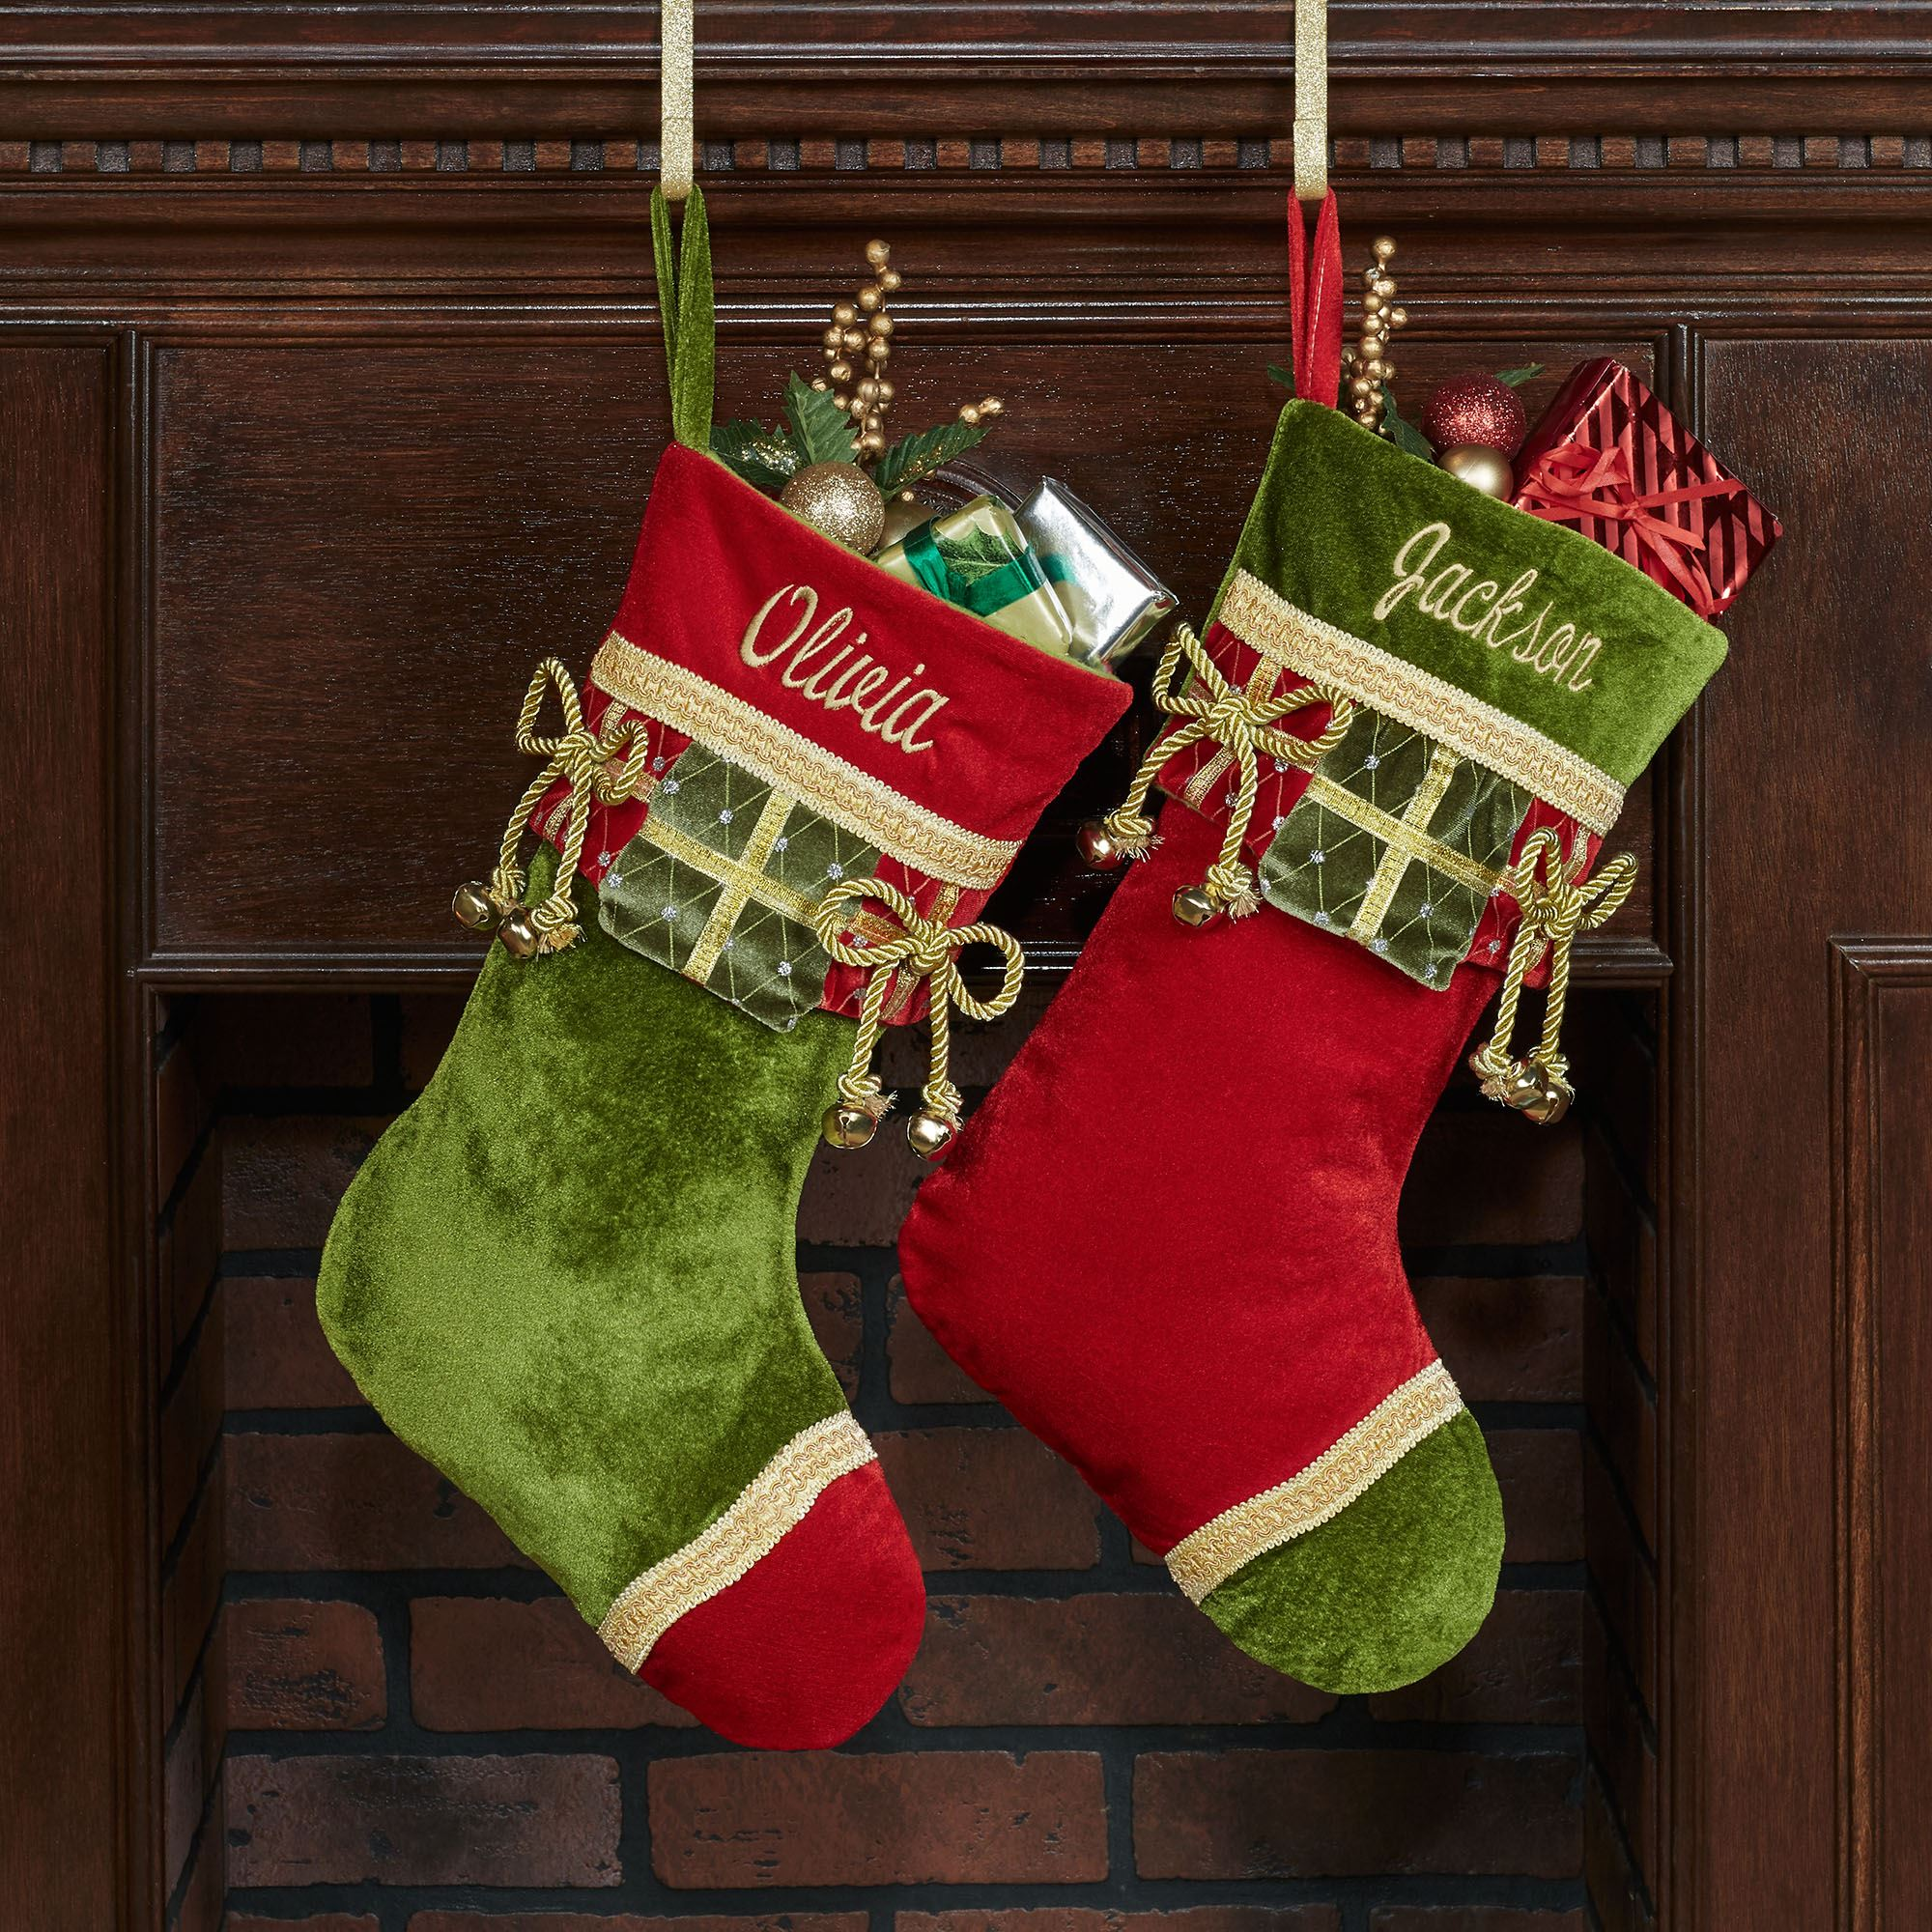 christmas present velveteen stockings green christmas present stocking touch to zoom - Red And Green Christmas Stockings